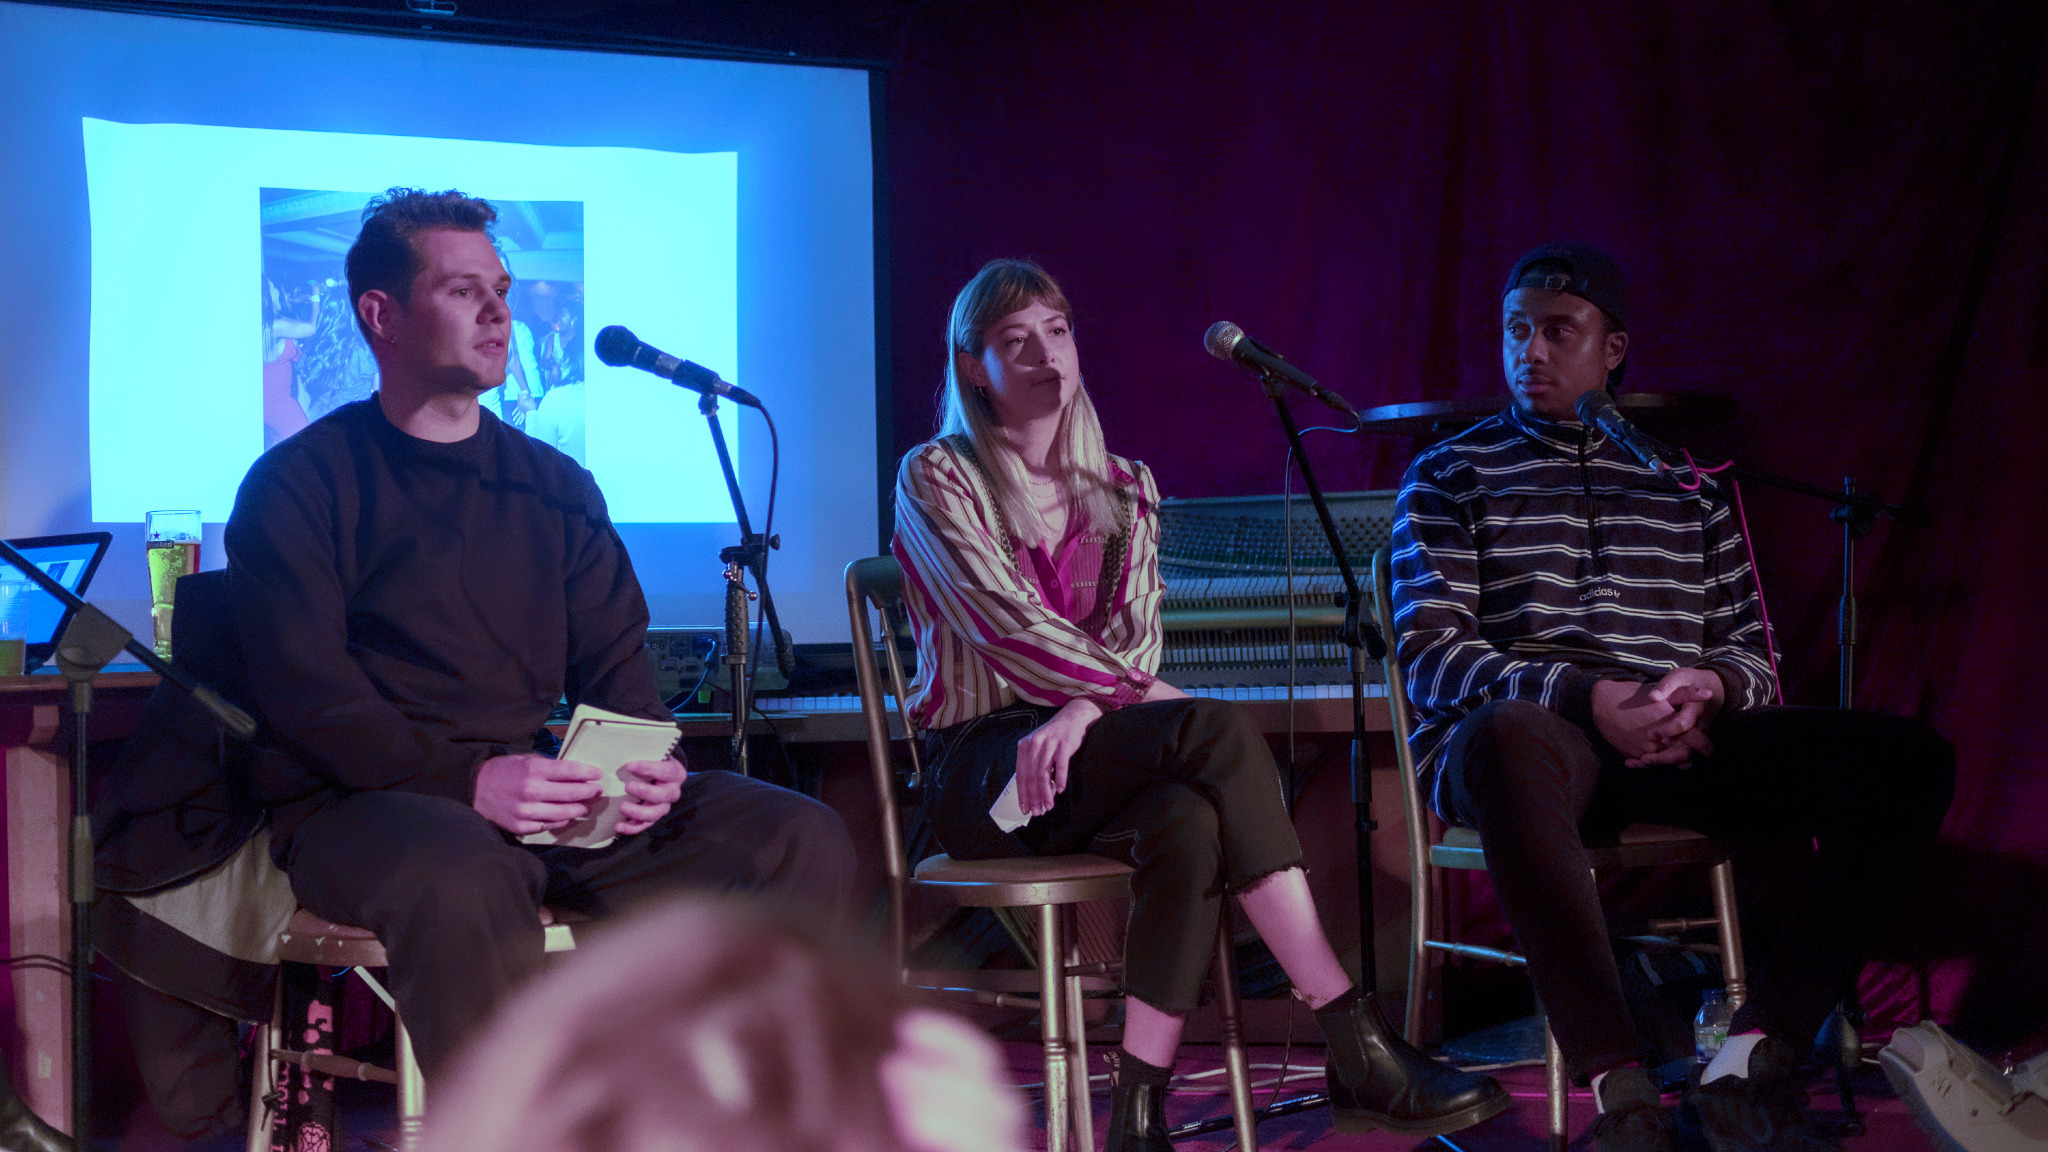 Sam Wright, Alice Mann and Jojo Sonubi on the stage at SET, Dalston. 7th February, 2019